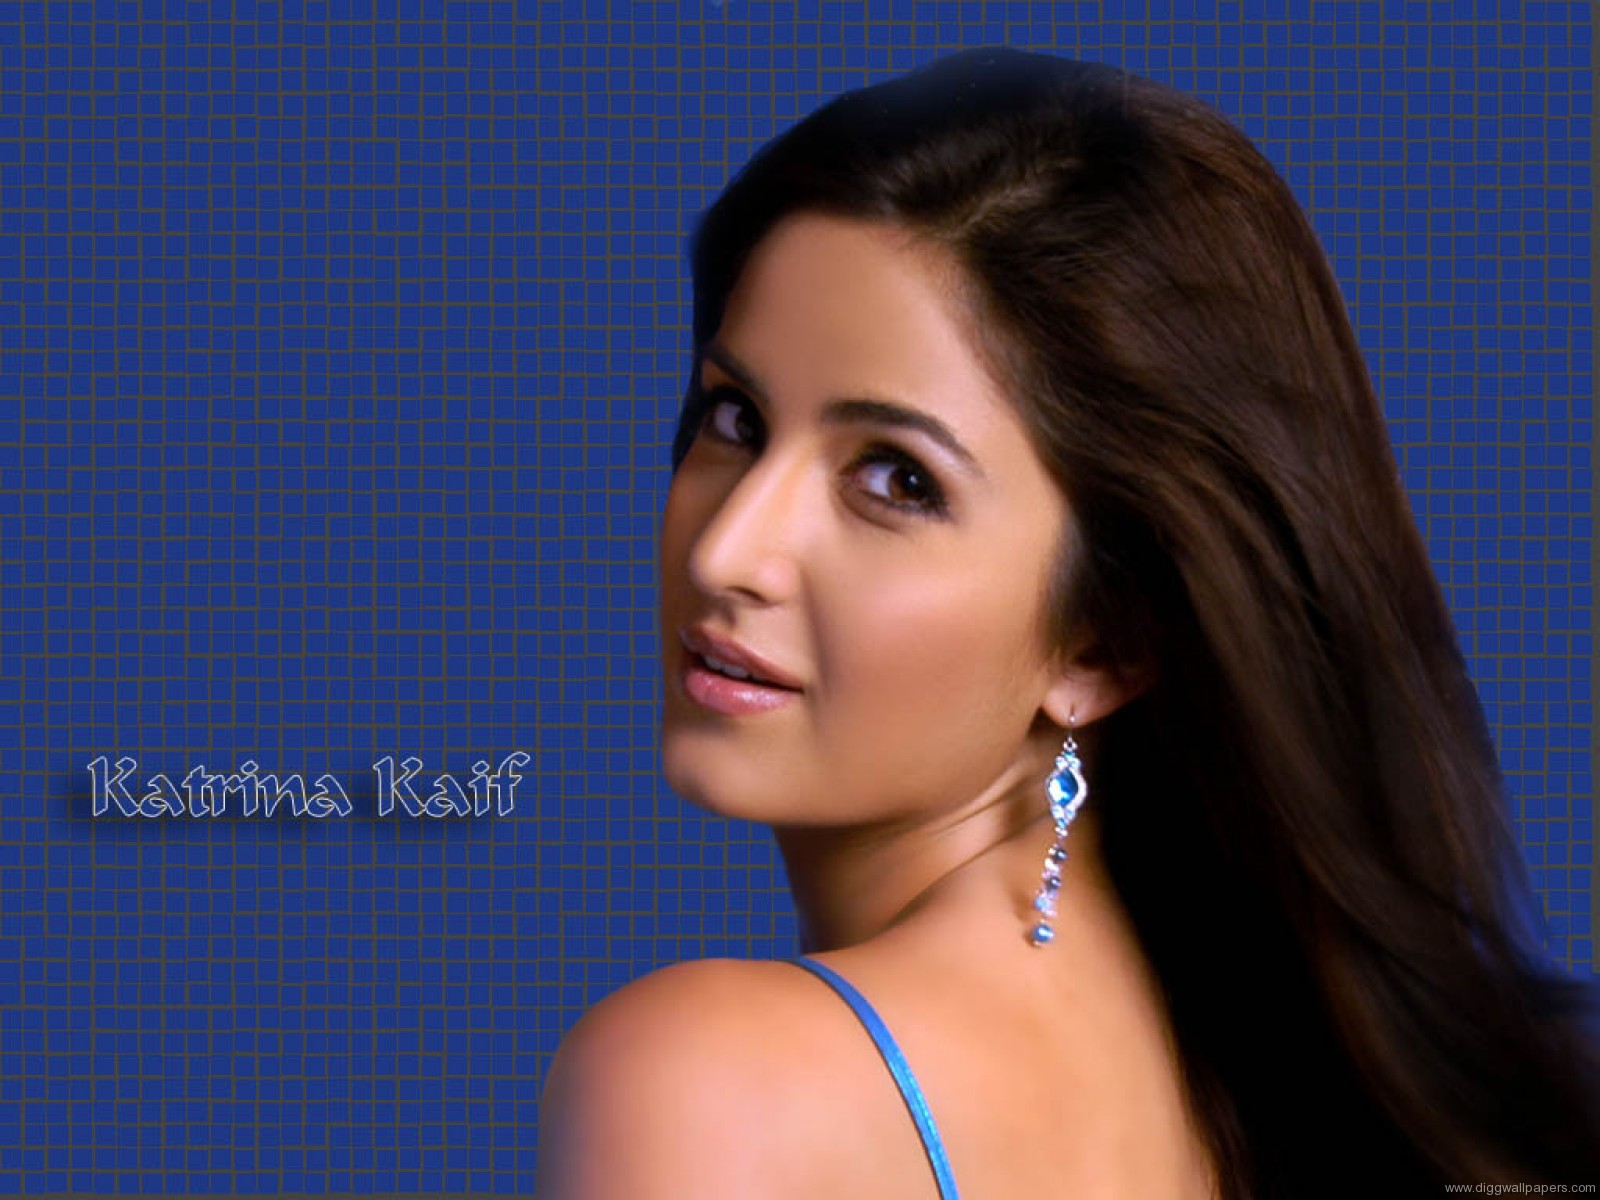 Katrina Kaif Hd Wallpapers For Desktop  Full Hd Wallpapers-3285